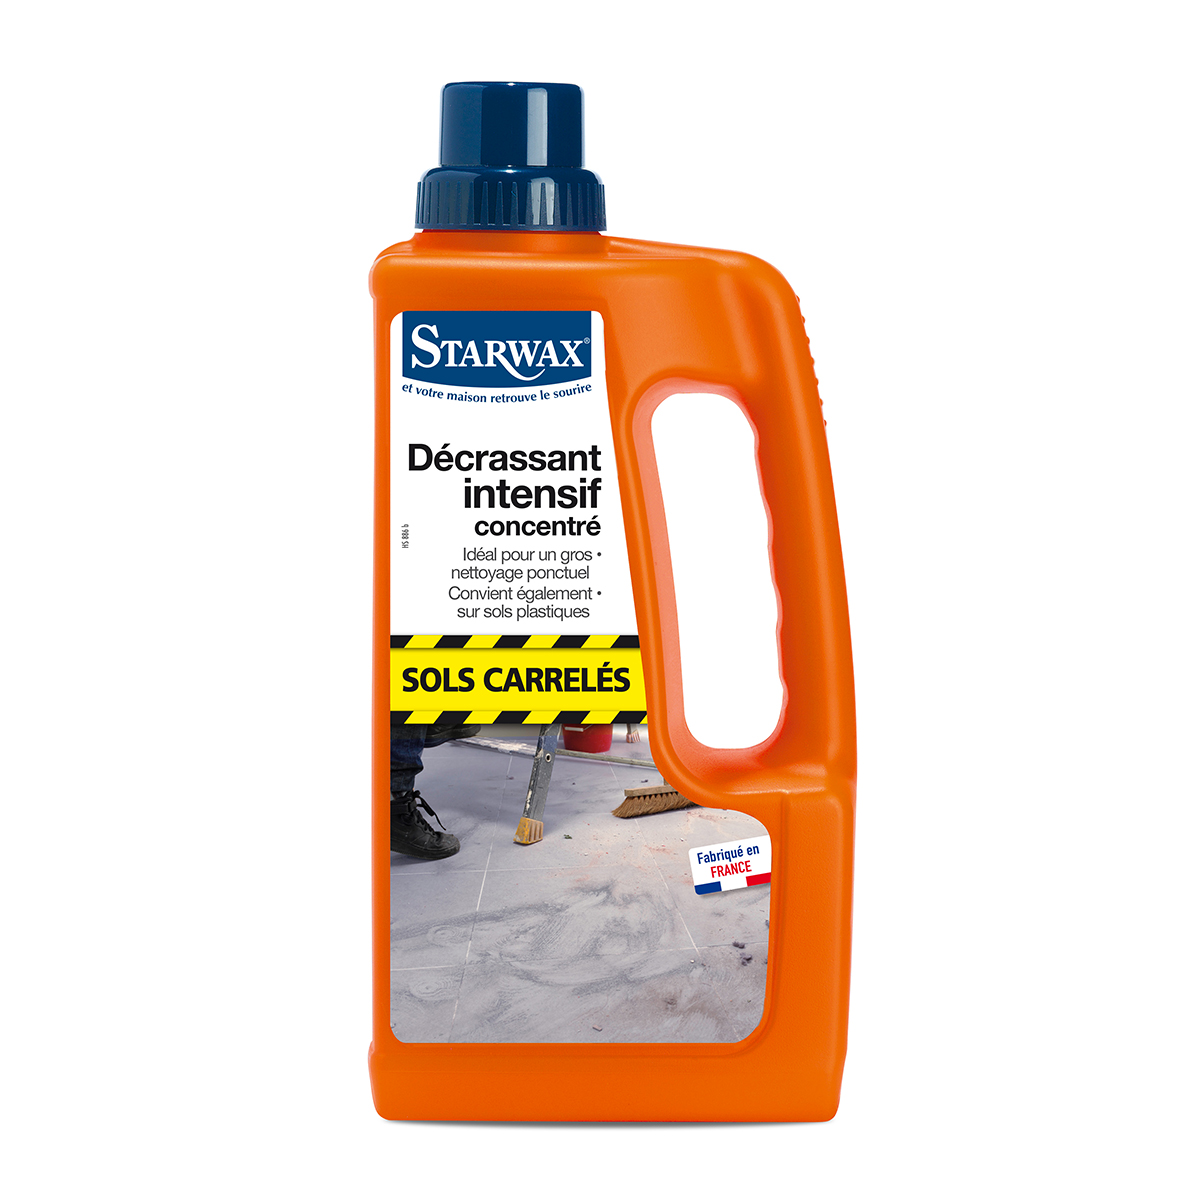 Heavy-duty cleaner - Starwax